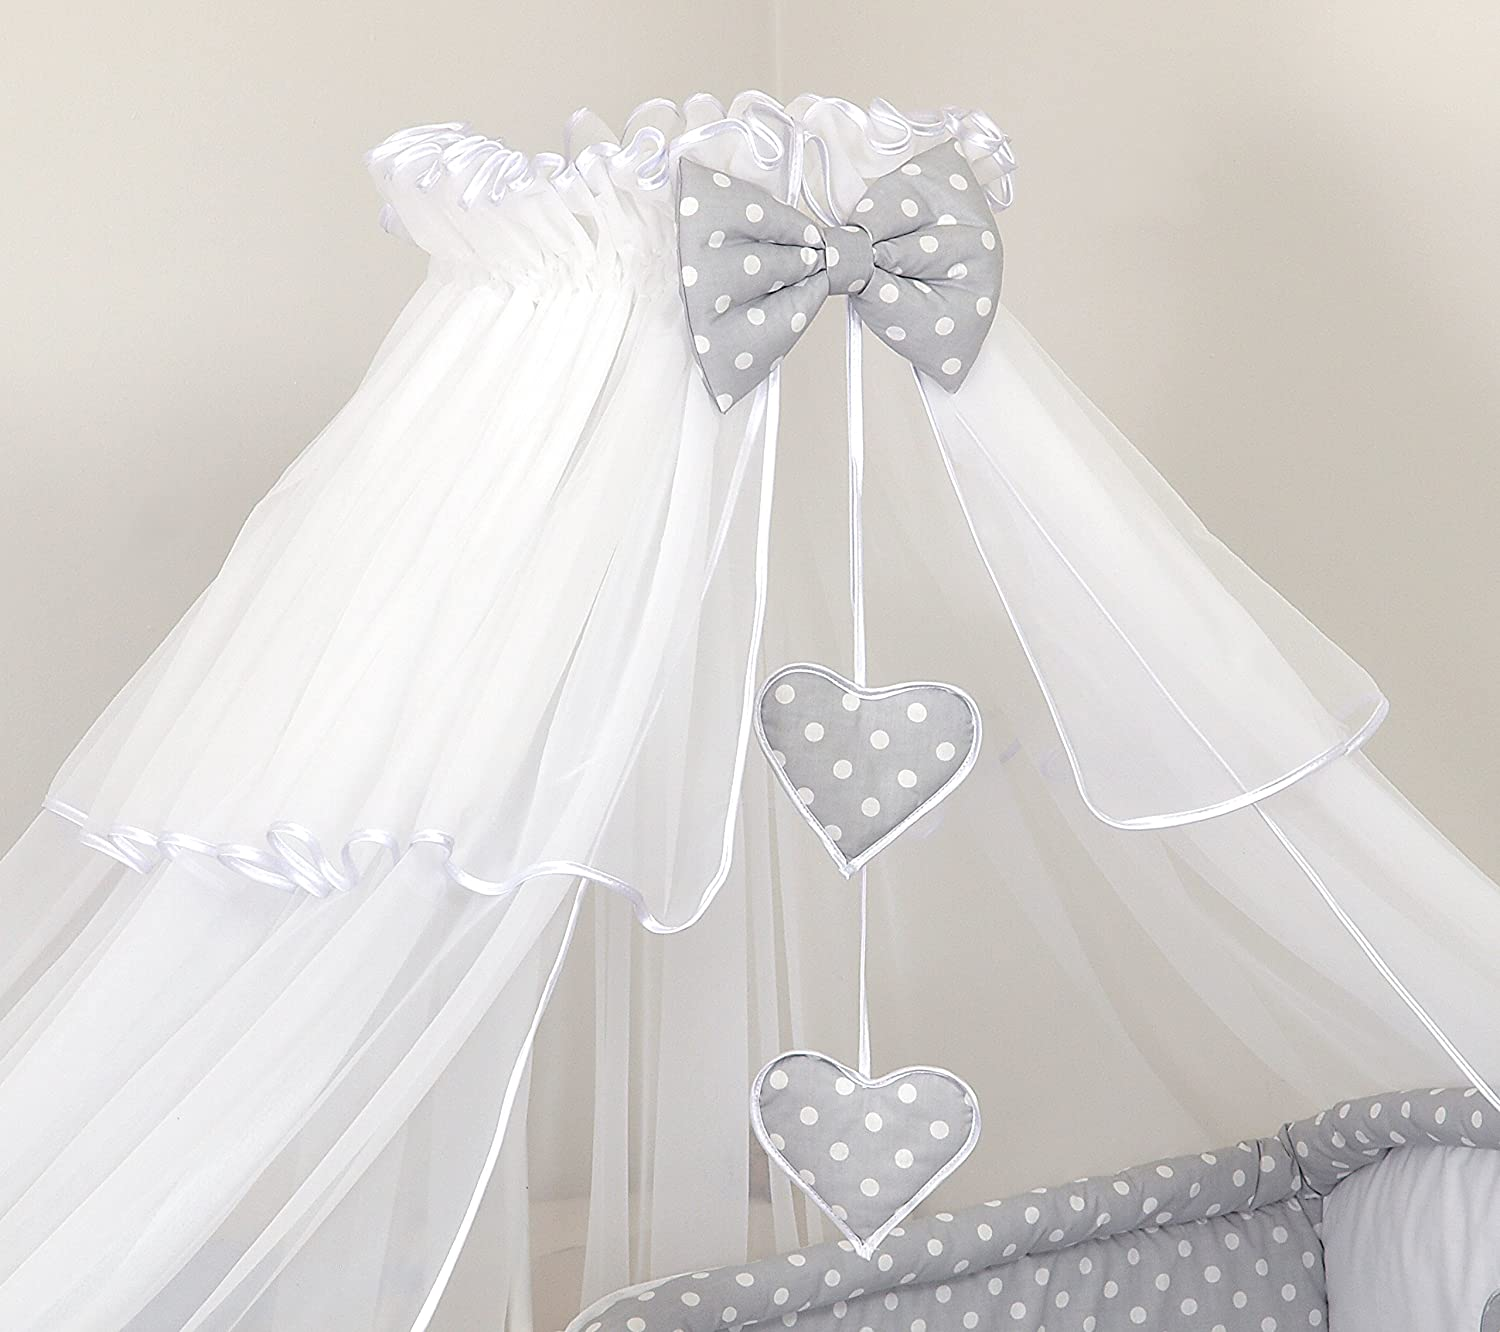 LUXURY CANOPY DRAPE + FREE STANING HOLDER BABY COT BED ROD MOSQUITO NET CANOPIES (White) PRO COSMO